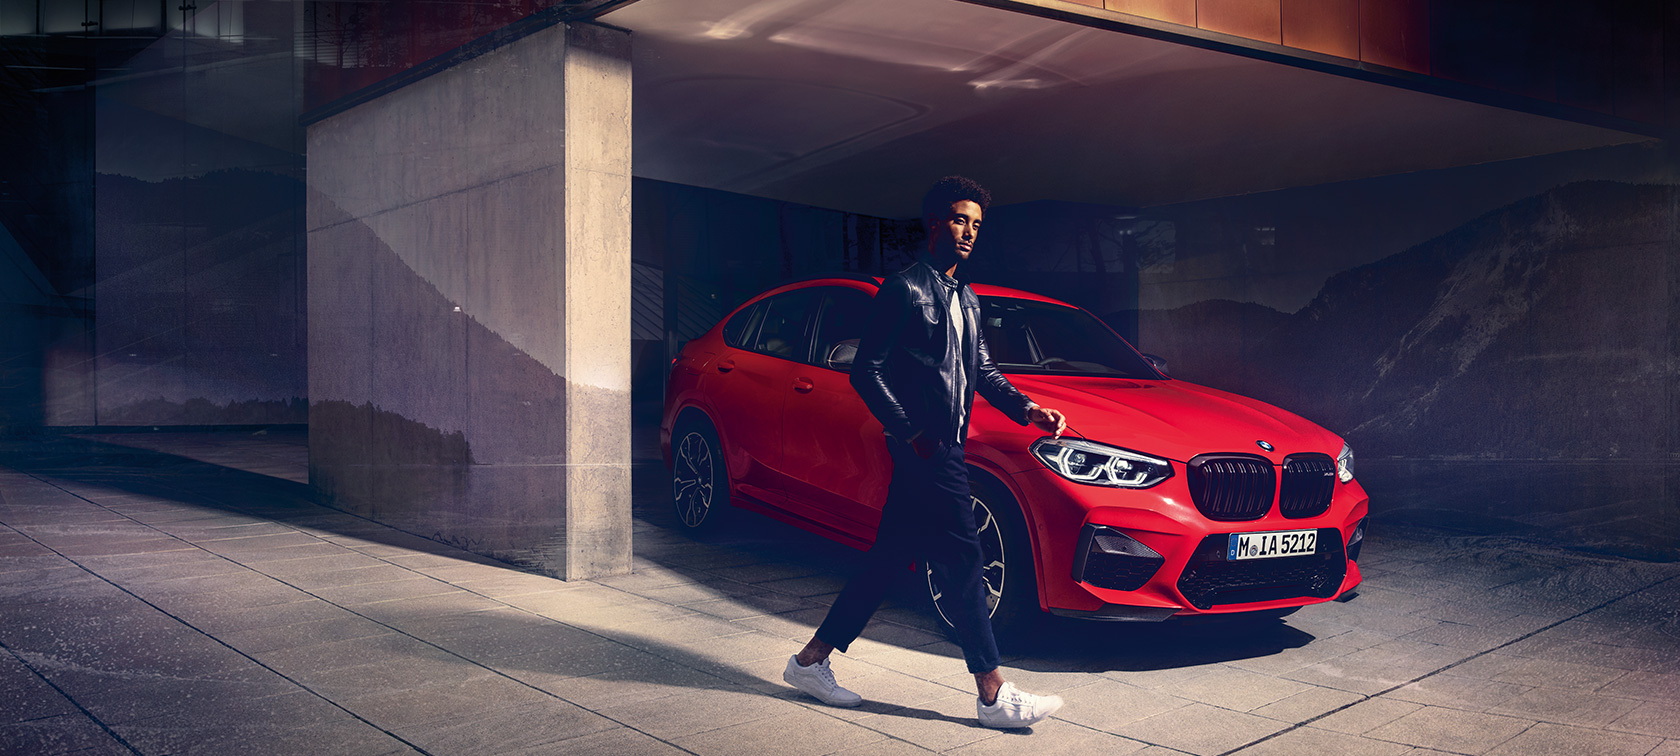 BMW X4 M Competition in Toronto Red metallizzato, esterni, vista laterale a tre quarti con ragazzo.